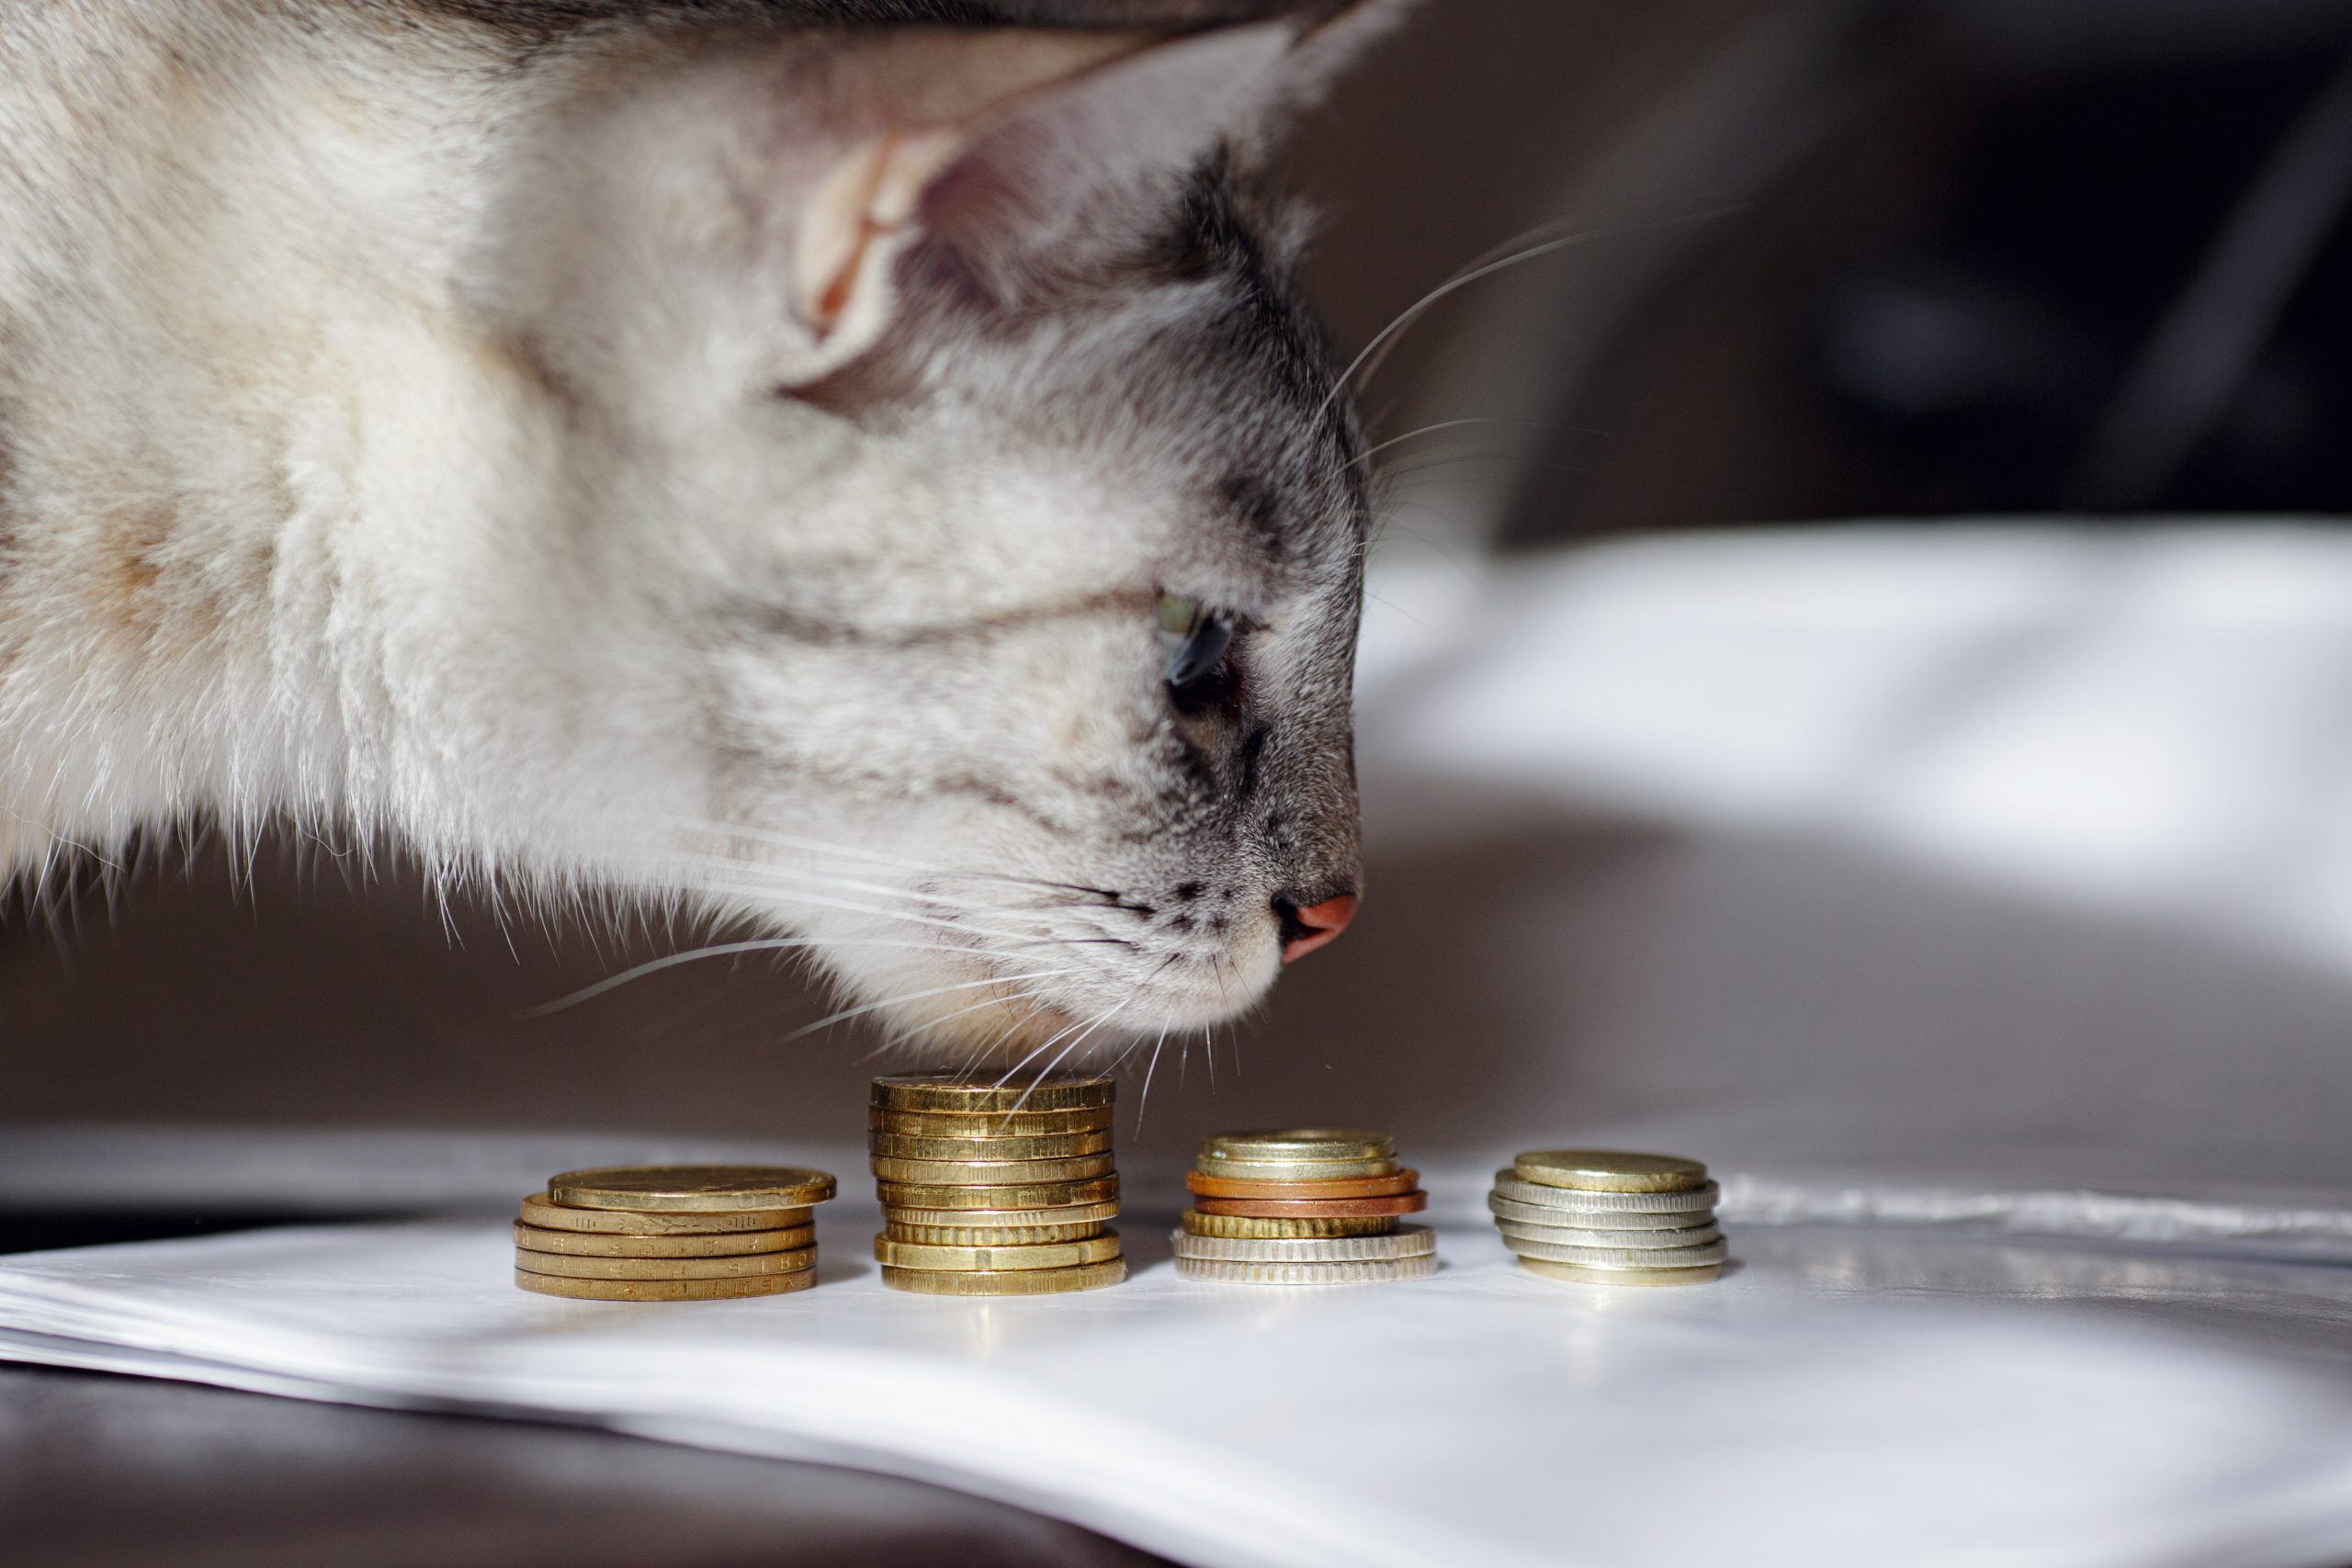 A grey cat watching stack of coins.